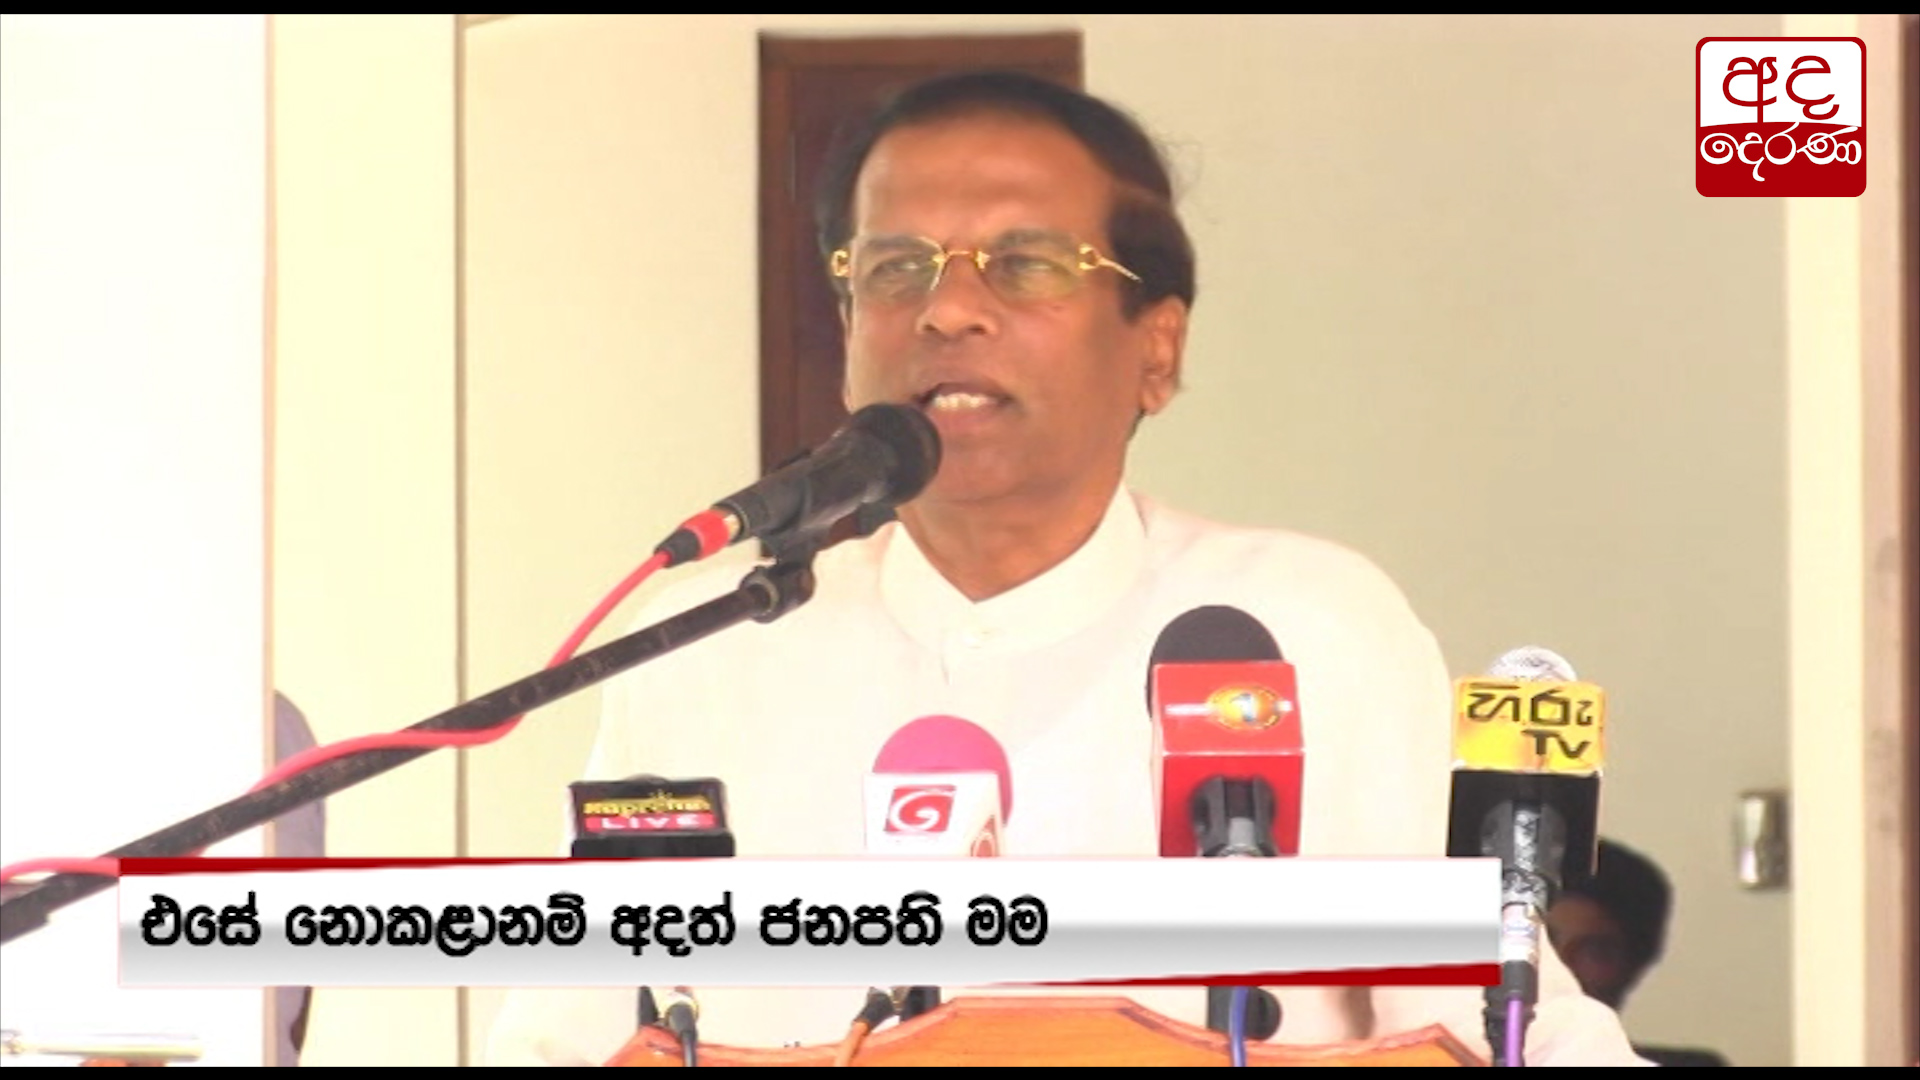 Constitutional amendment needed for country to move forward – Maithripala Sirisena